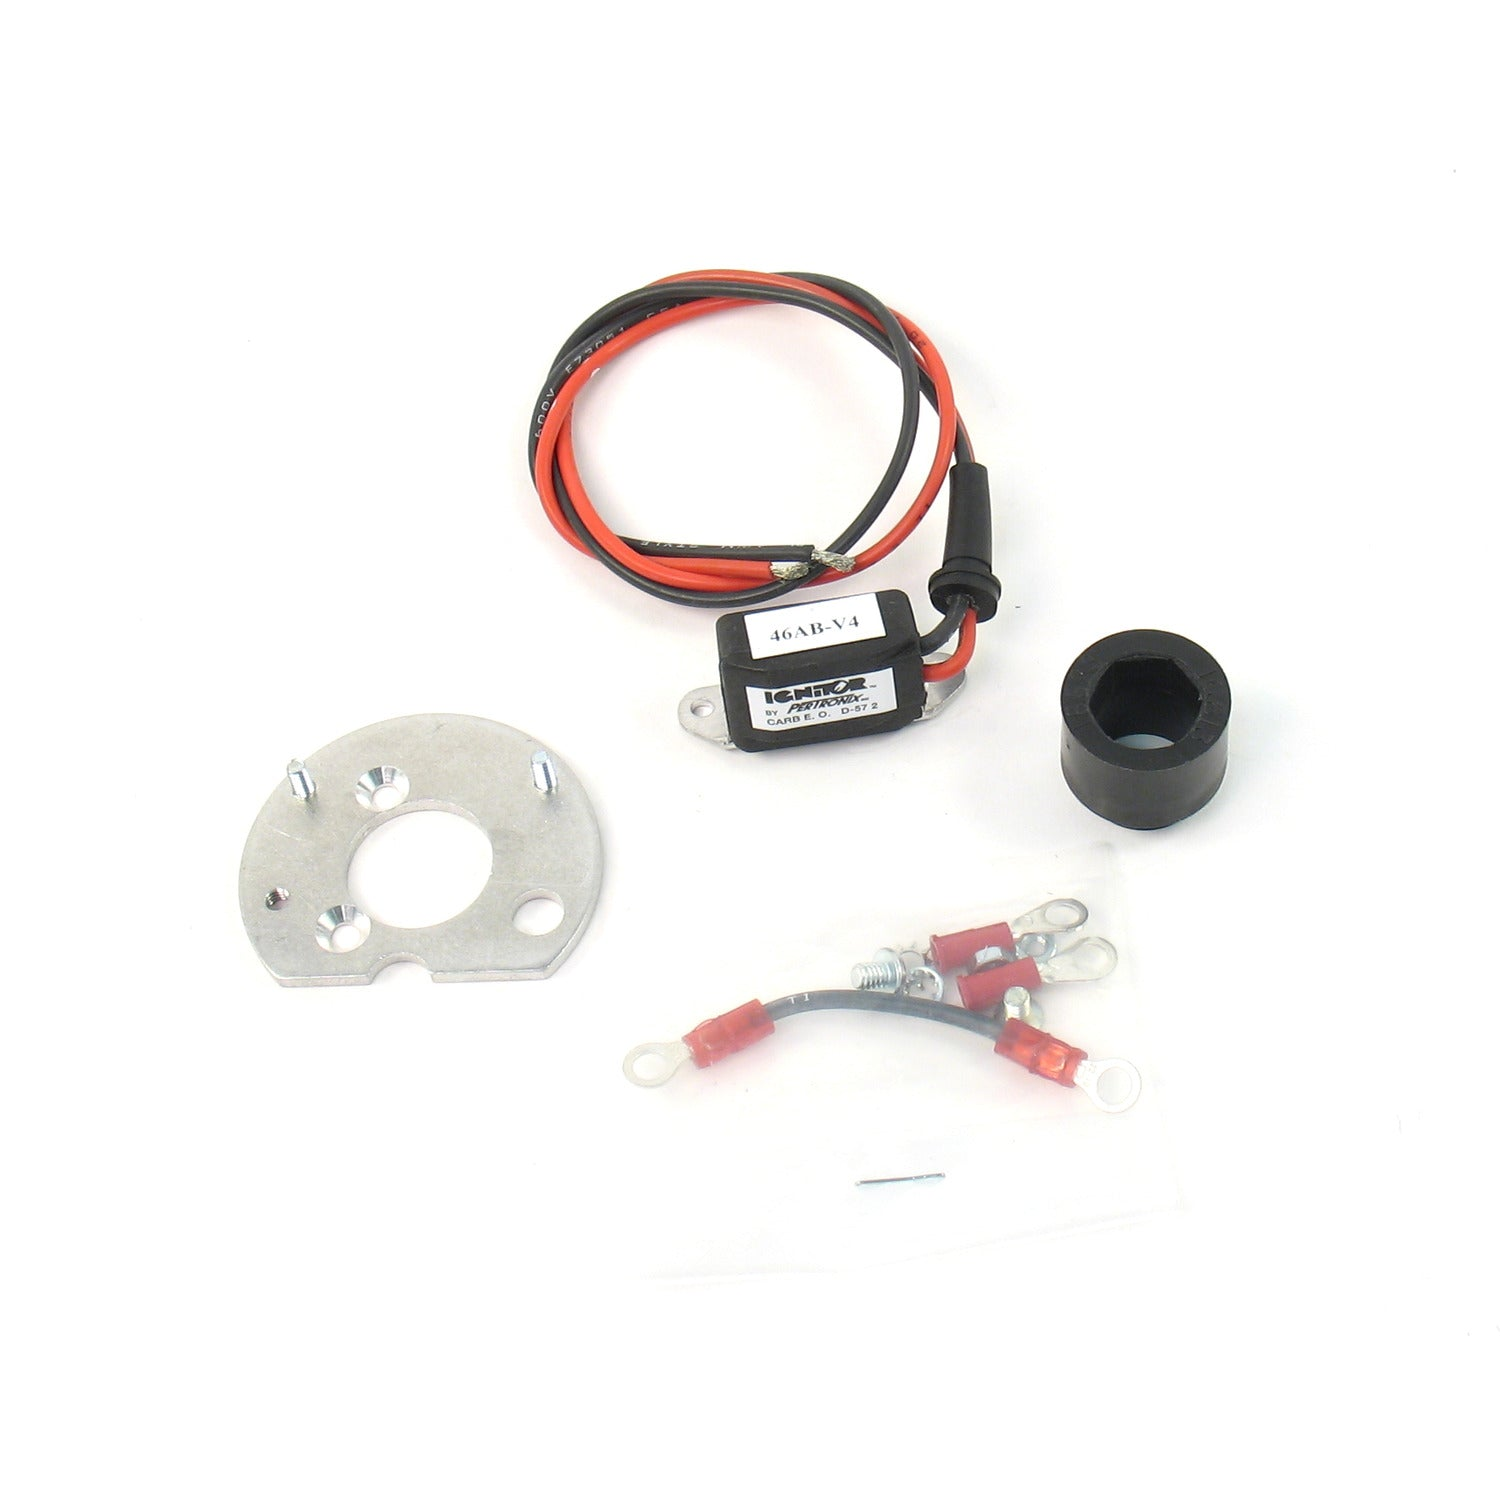 PerTronix 1665A Ignitor Toyota 6 cyl